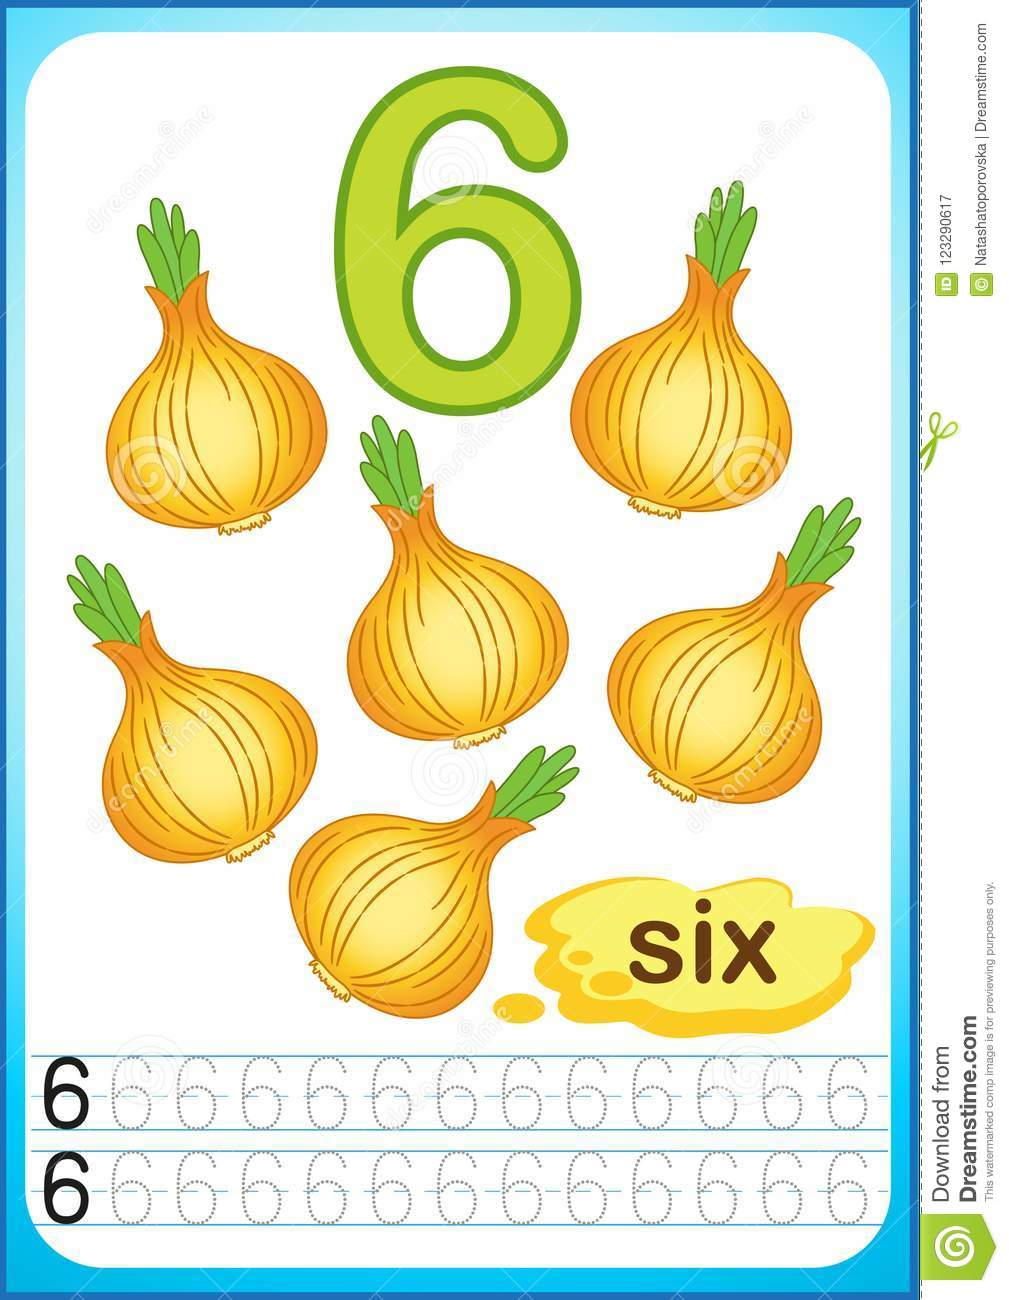 photo regarding Vegetable Printable identified as Printable Worksheet For Kindergarten And Preschool